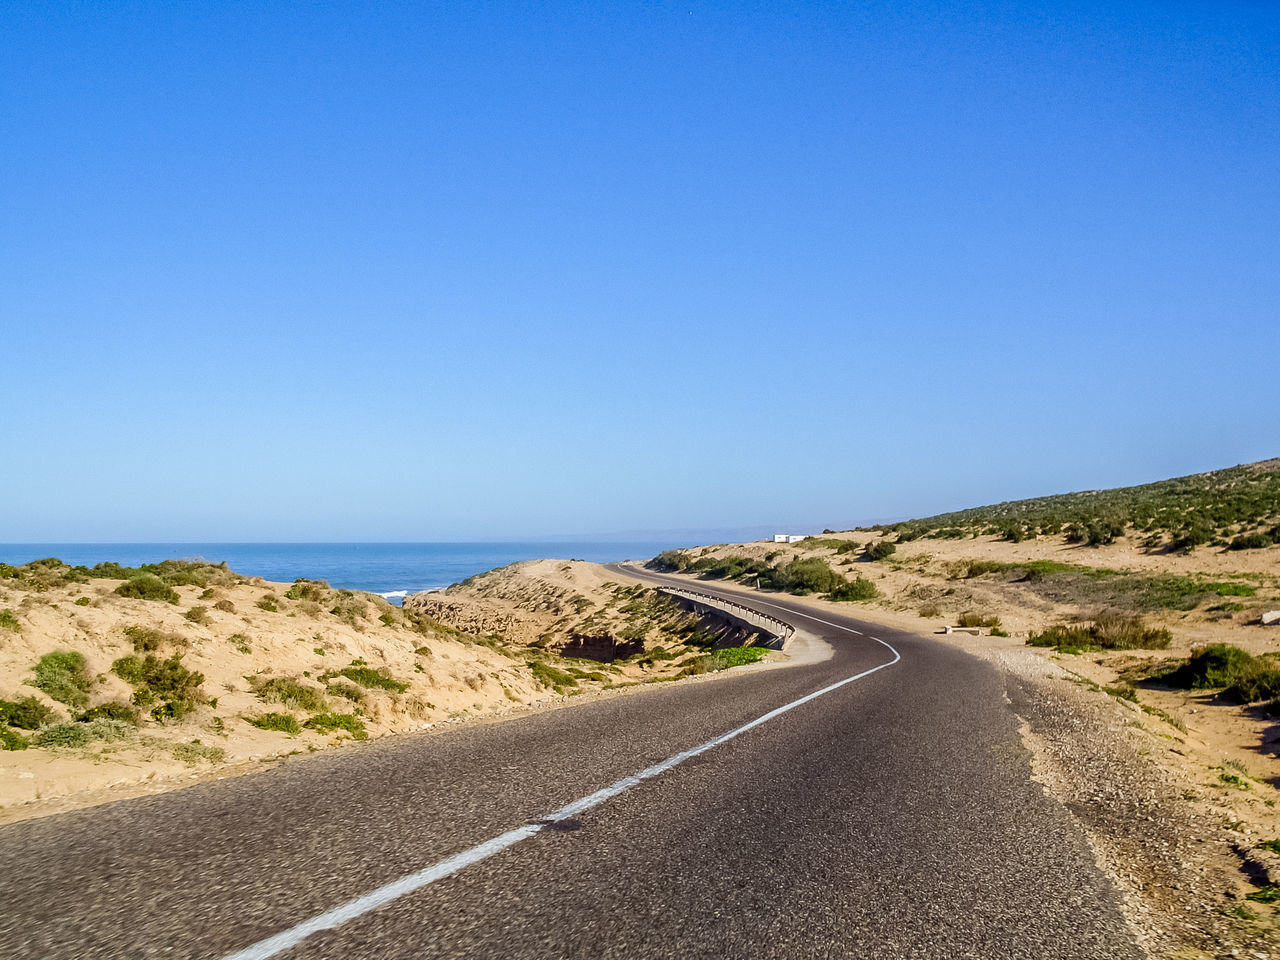 Street at the morocean coast Beach Beauty In Nature Blue Clear Sky Coastline Copy Space Day Horizon Over Water Landscape Mountain Nature No People Non-urban Scene Outdoors Road Scenics Sea Sky The Way Forward Tranquil Scene Tranquility Travel Travel Destinations Winding Road